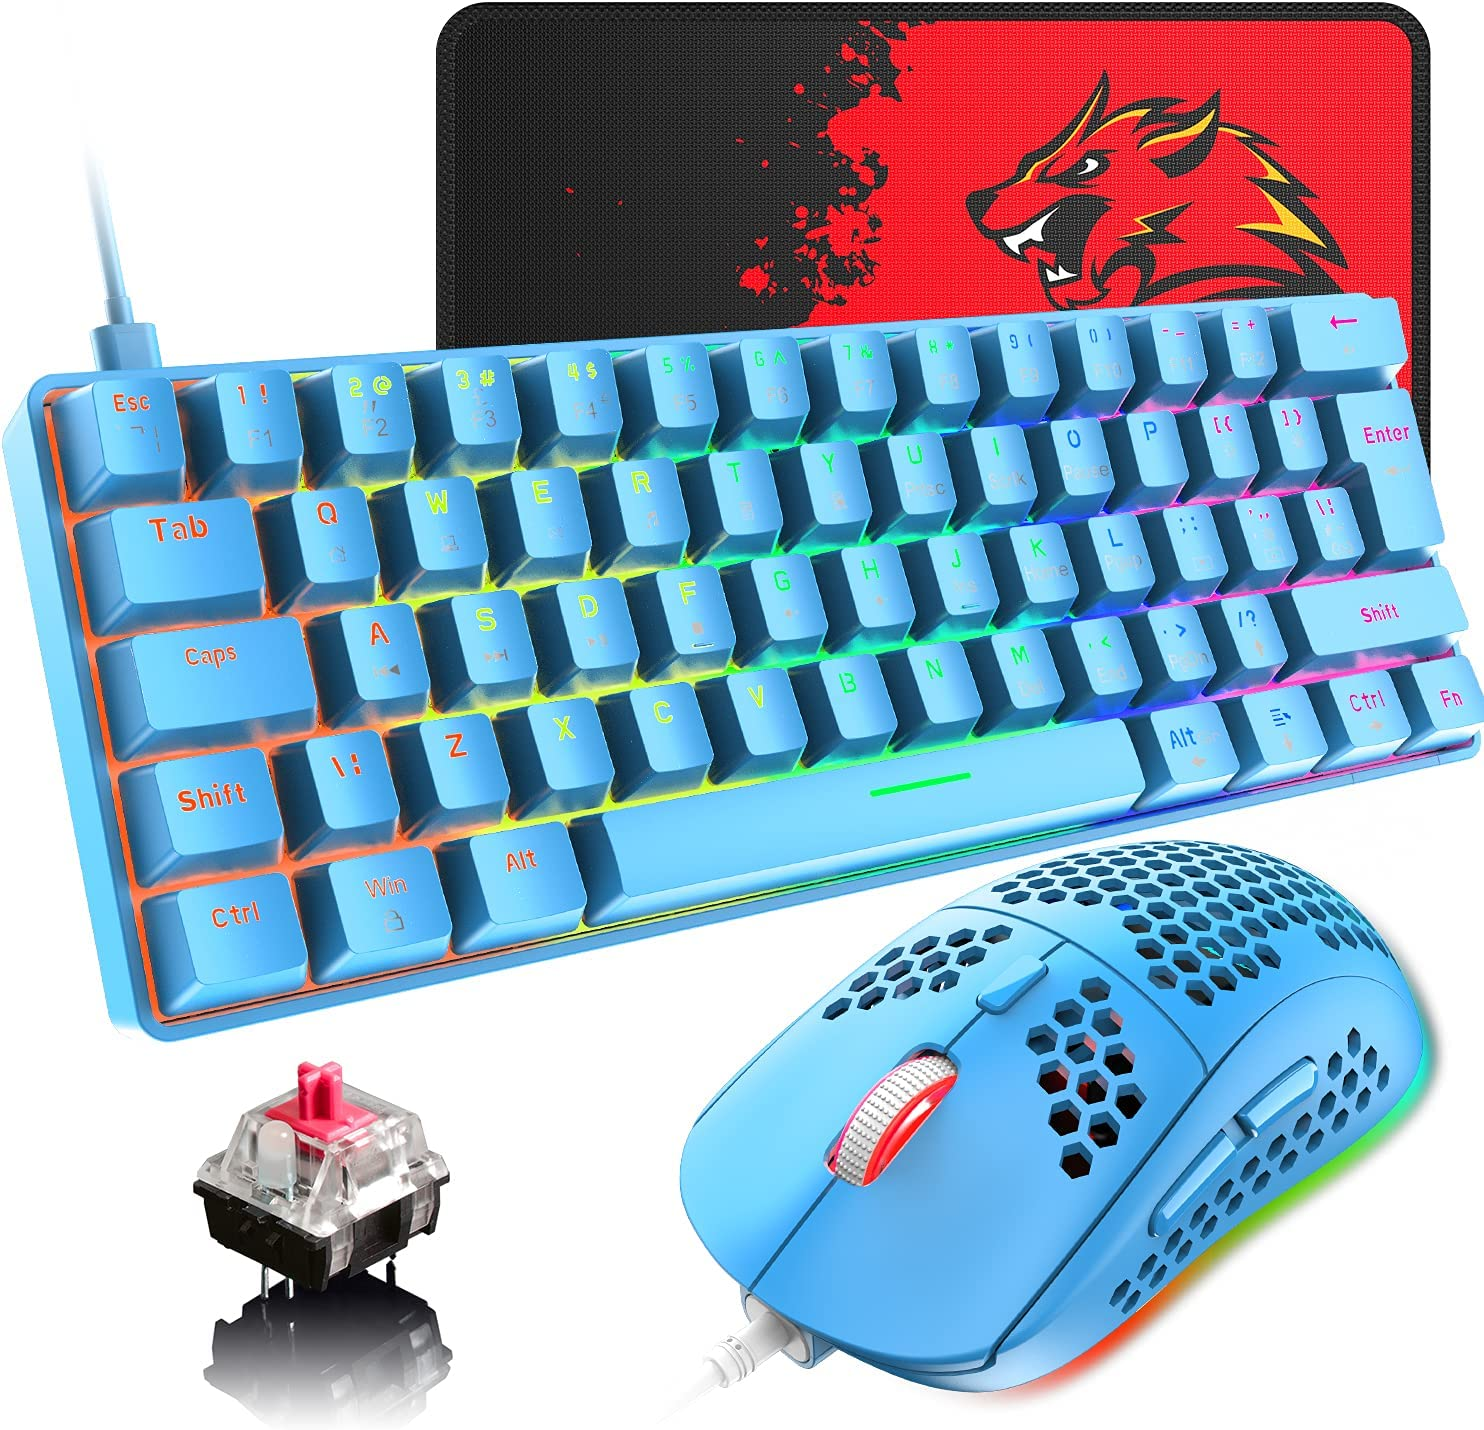 60% Wired Mechanical Gaming Keyboard and shop Combo All items free shipping Mouse Ultra-Comp